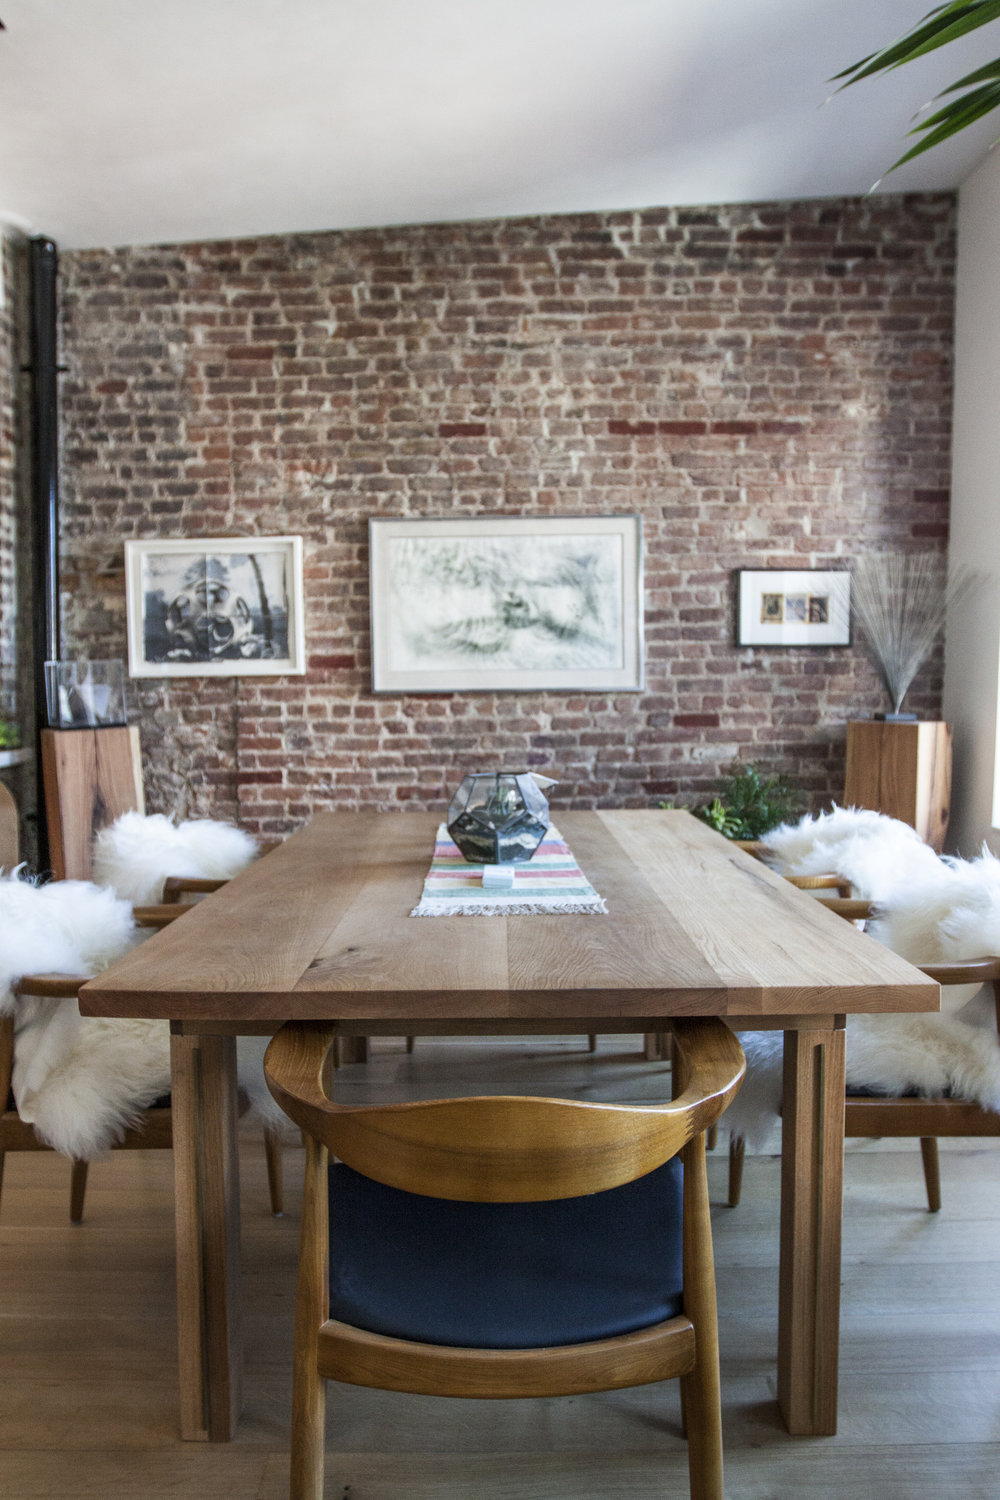 Minimal ZUNG wood oak table with chairs in New York apartment with exposed brick wall